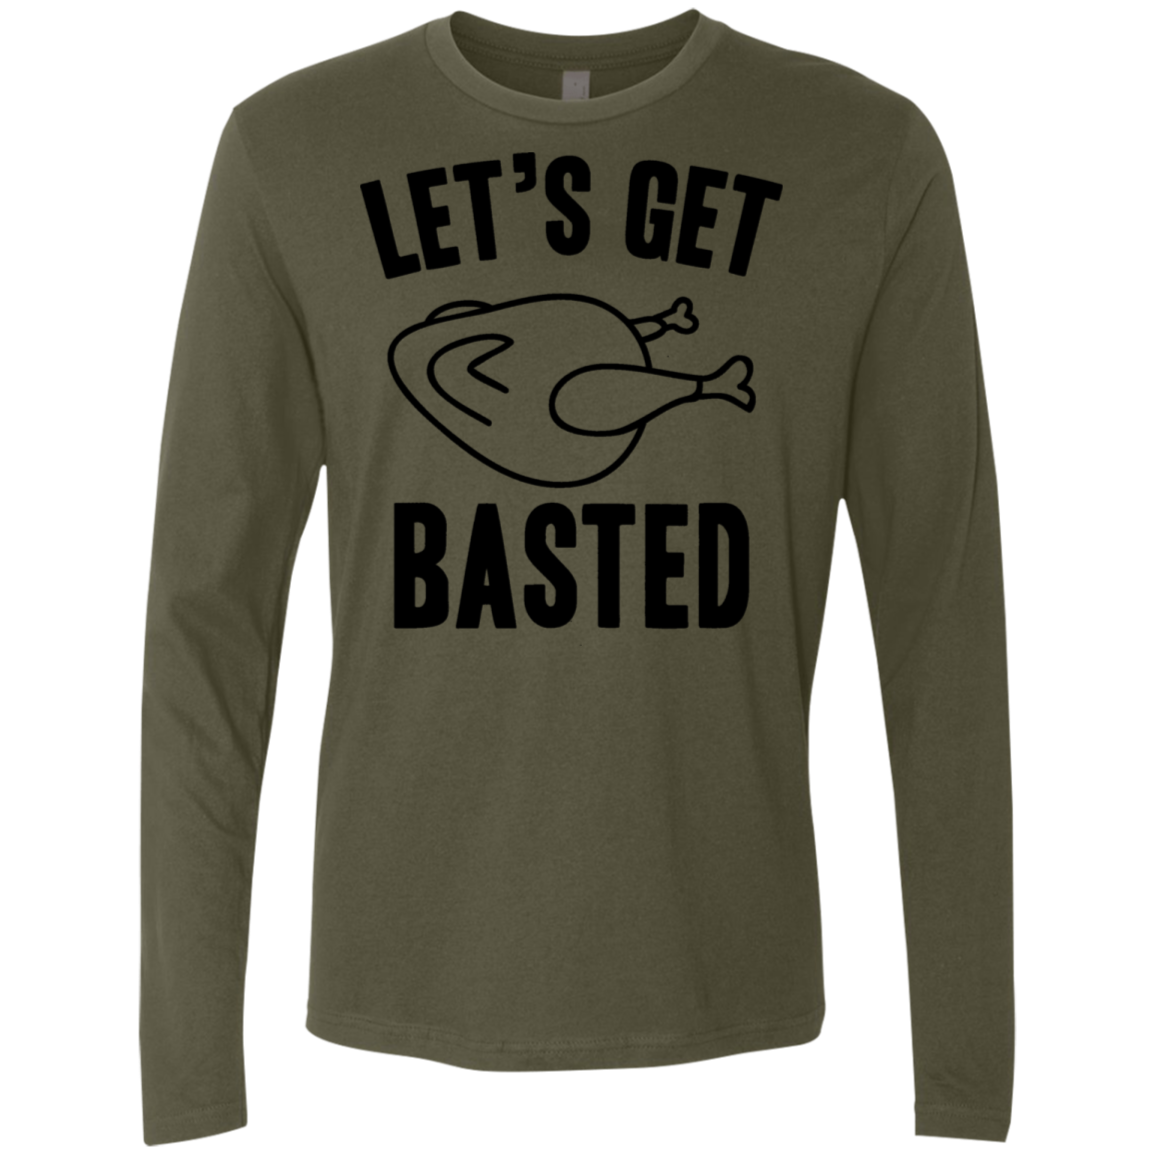 Let's Get Basted Men's Long Sleeve Tee